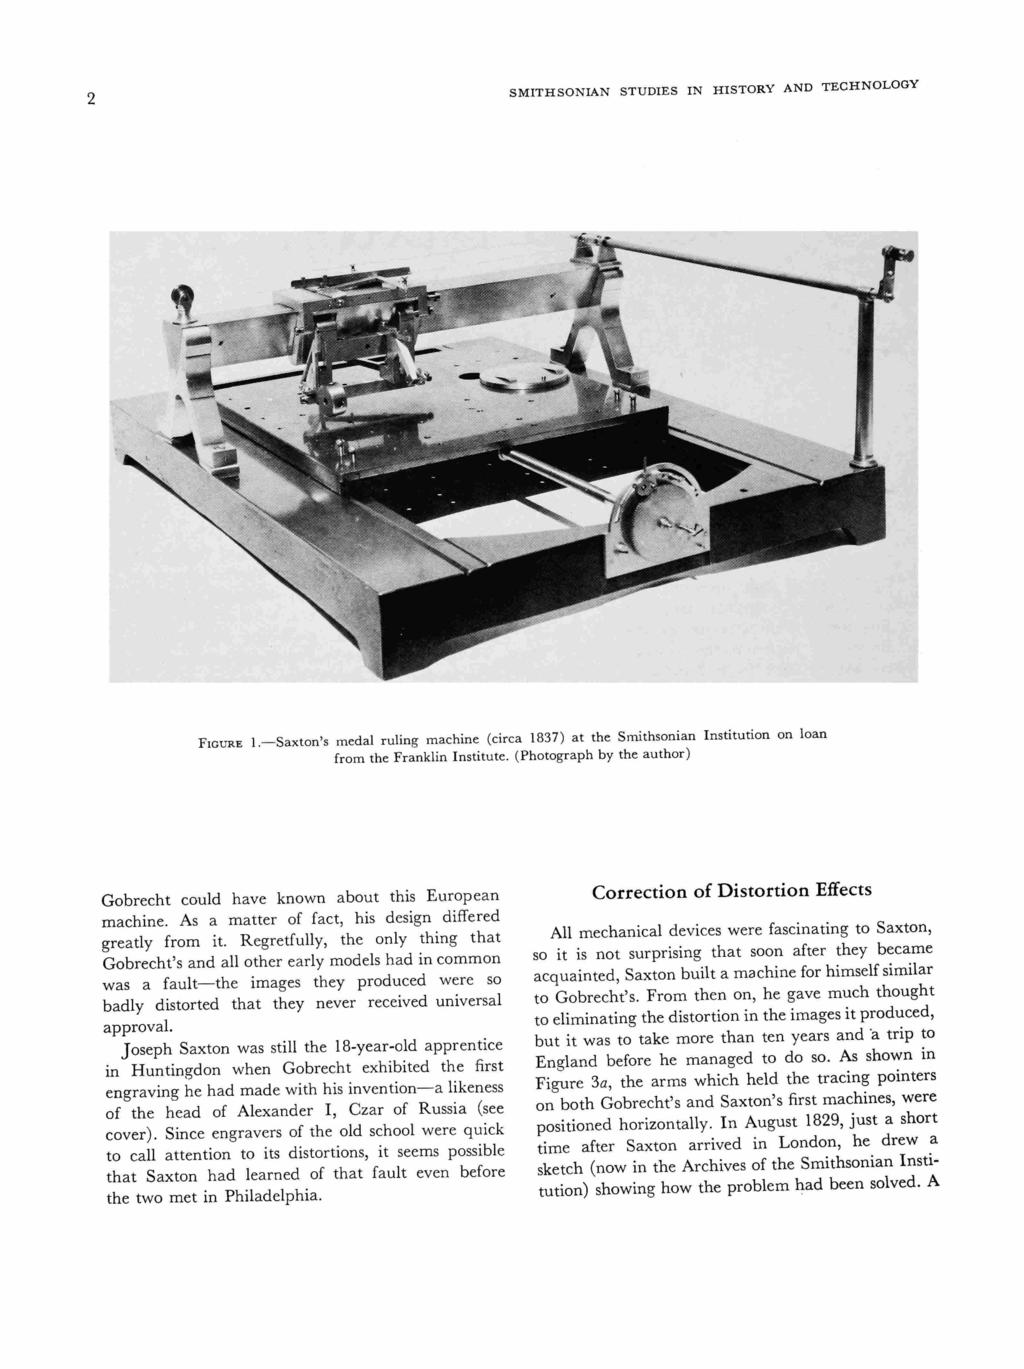 SMITHSONIAN STUDIES IN HISTORY AND TECHNOLOGY FIGURE 1.-Saxton's medal ruling machine (circa 1837) at the Smithsonian Institution on loan from the Franklin Institute.